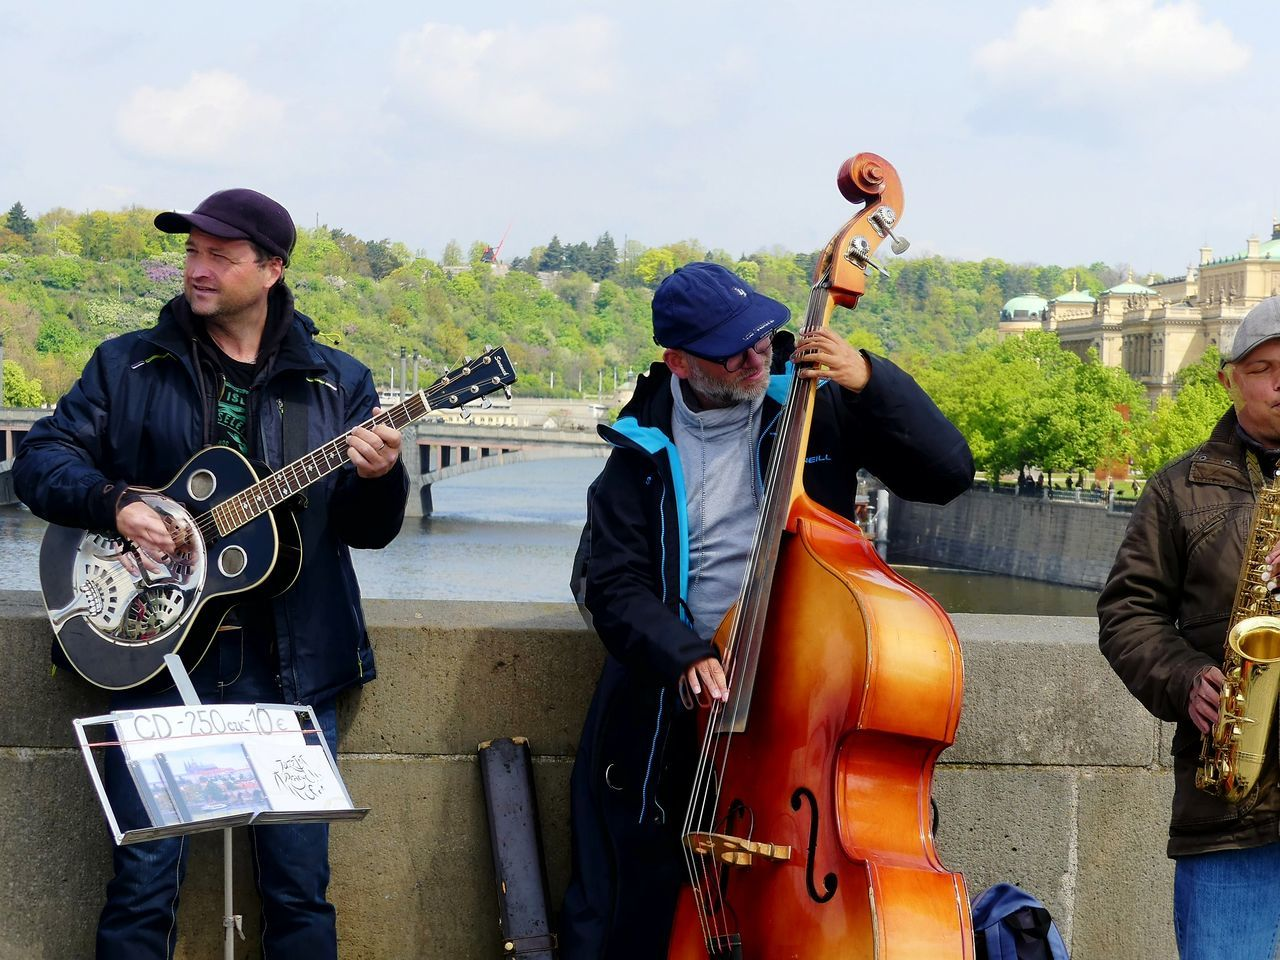 music, playing, guitar, musical instrument, musician, real people, performance, arts culture and entertainment, day, outdoors, standing, men, togetherness, occupation, sky, people